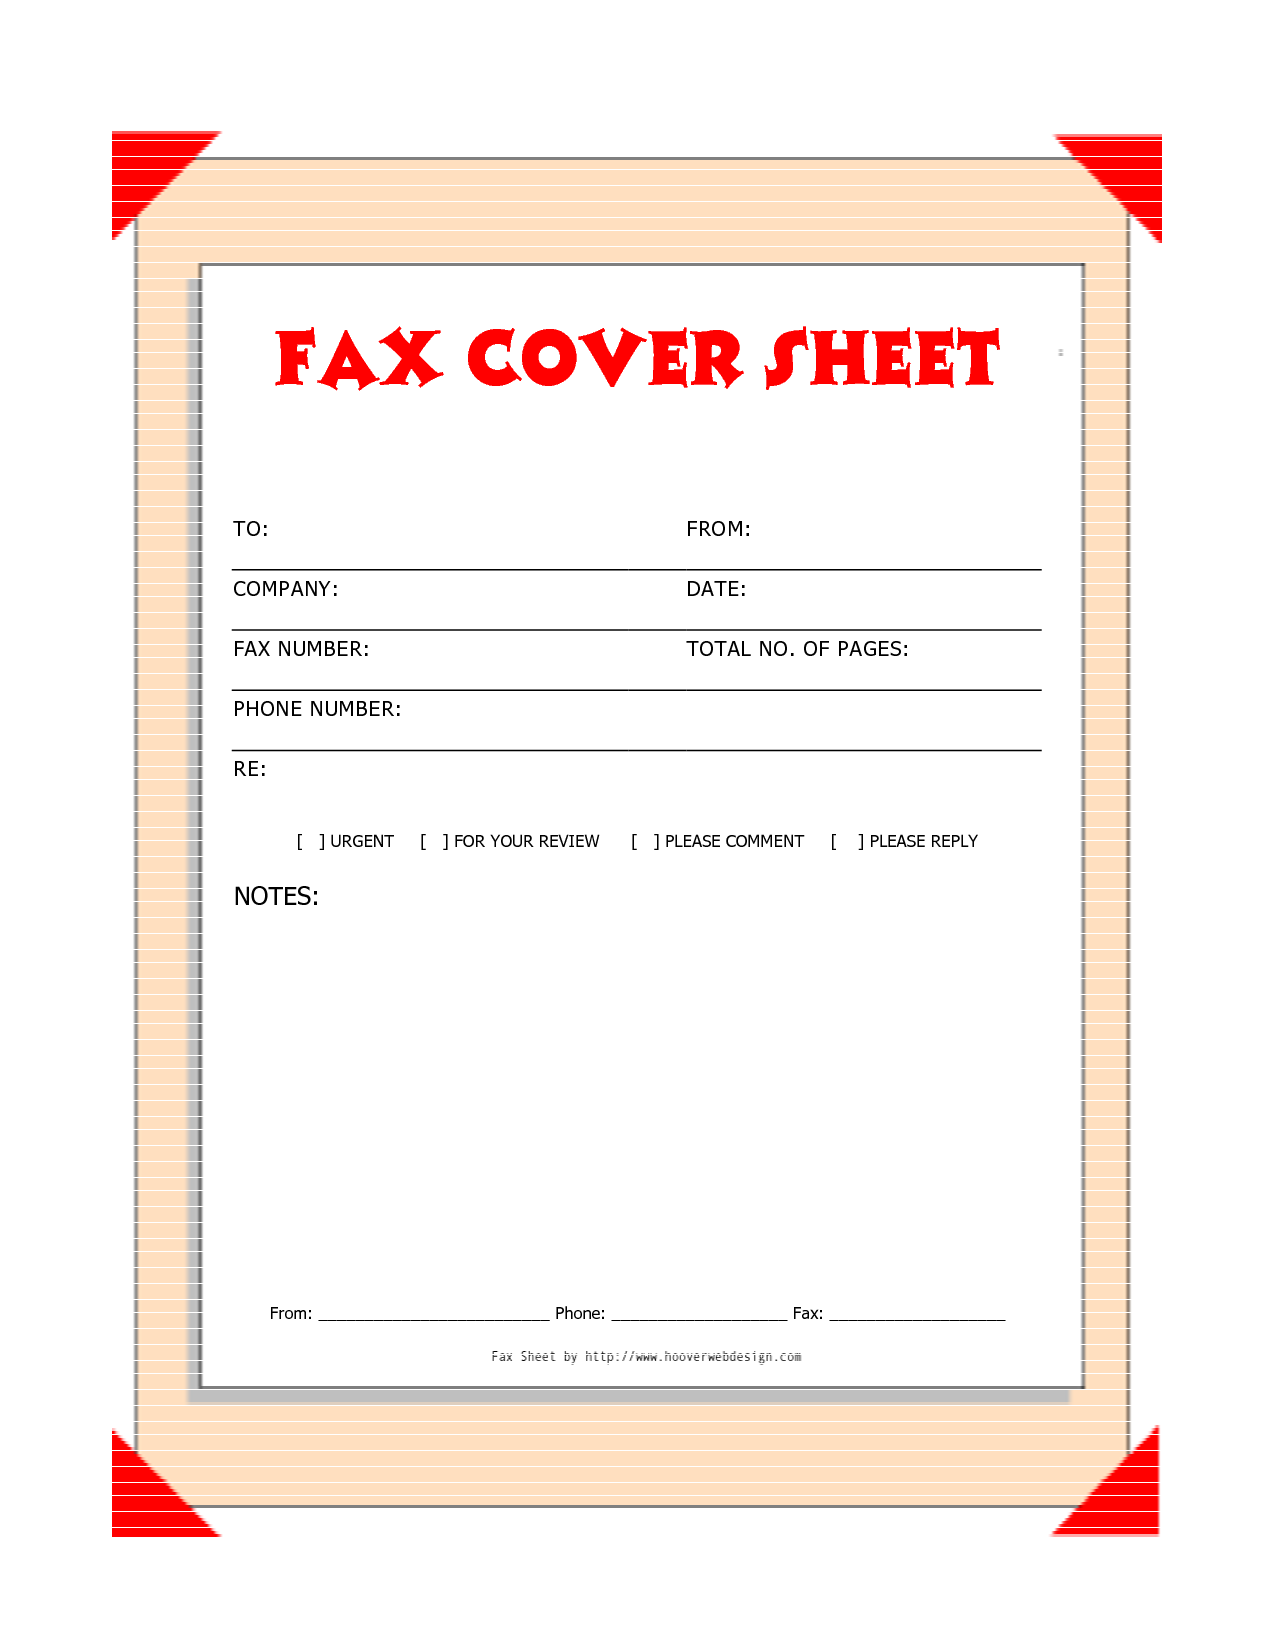 free downloads fax covers sheets free printable fax cover sheet template red download as - Fax Cover Letter Template Microsoft Word